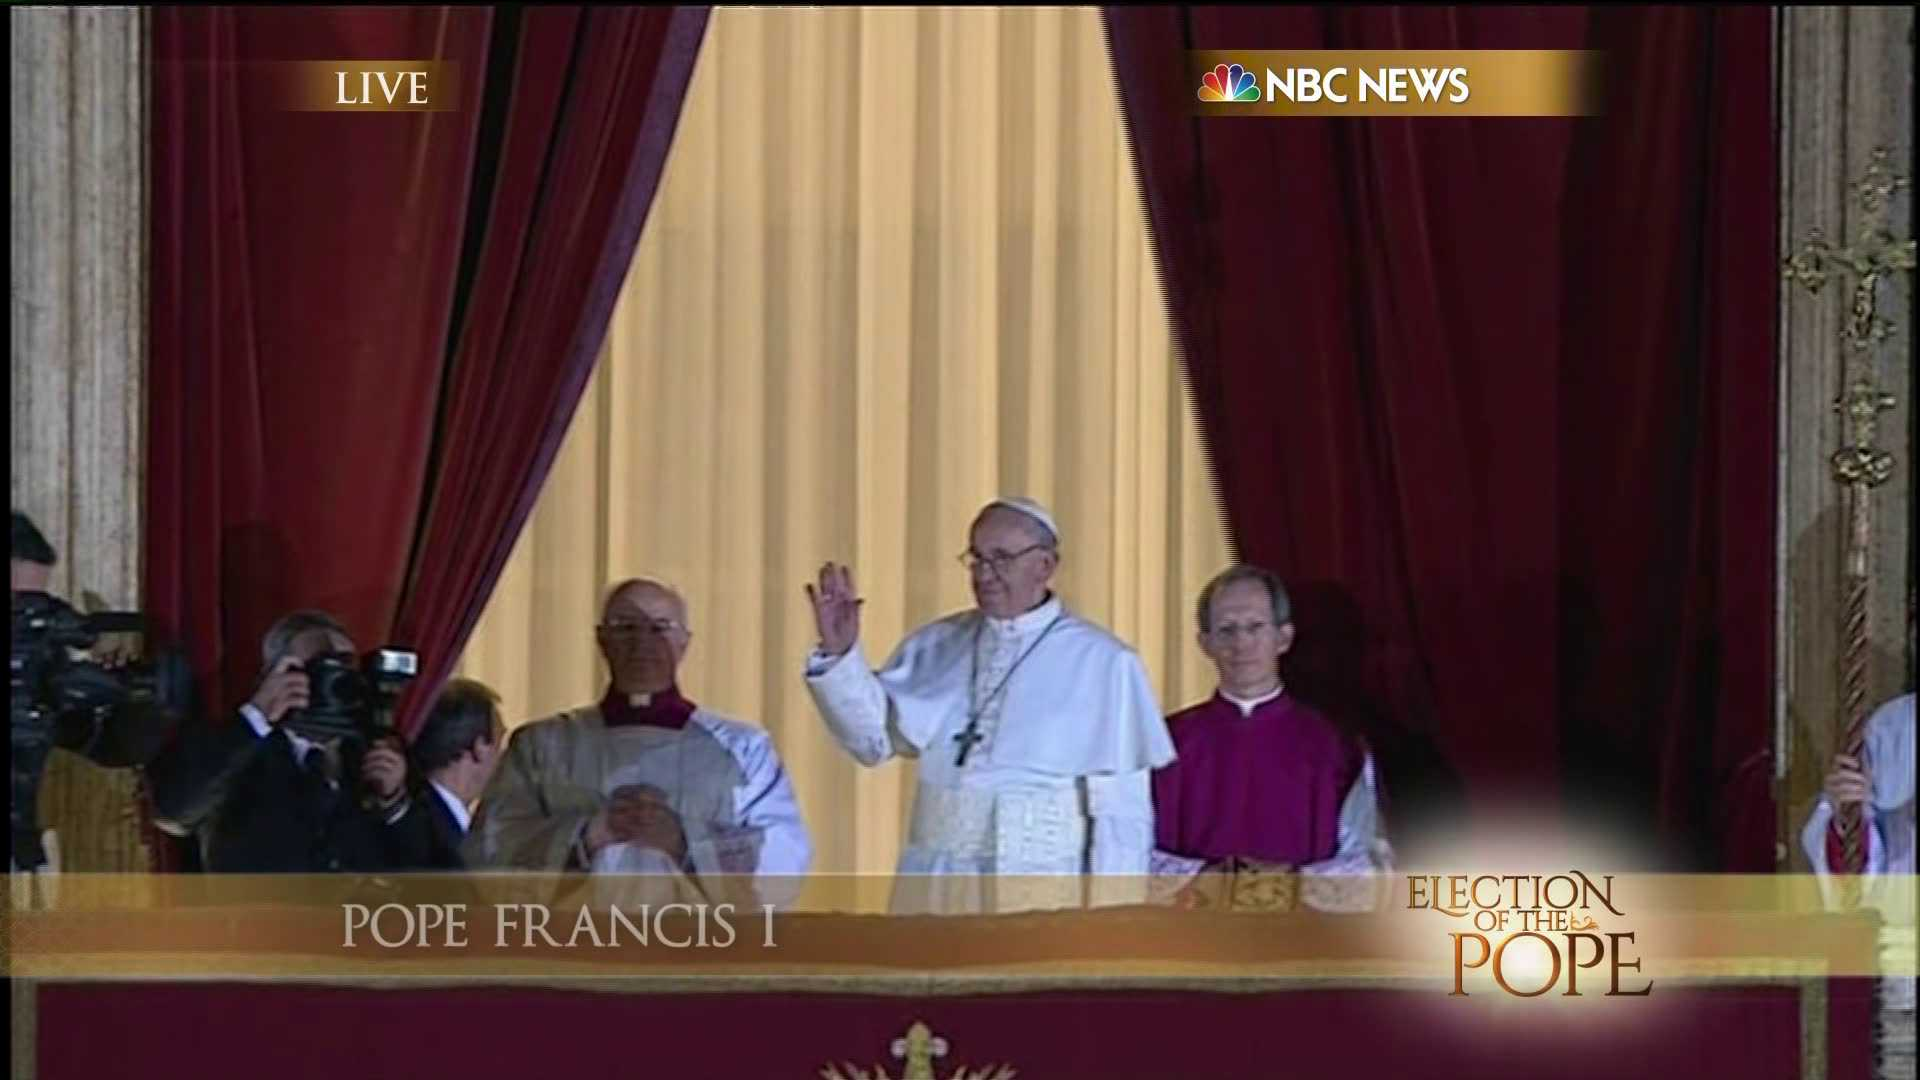 Pope Francis I, from kfor.com.